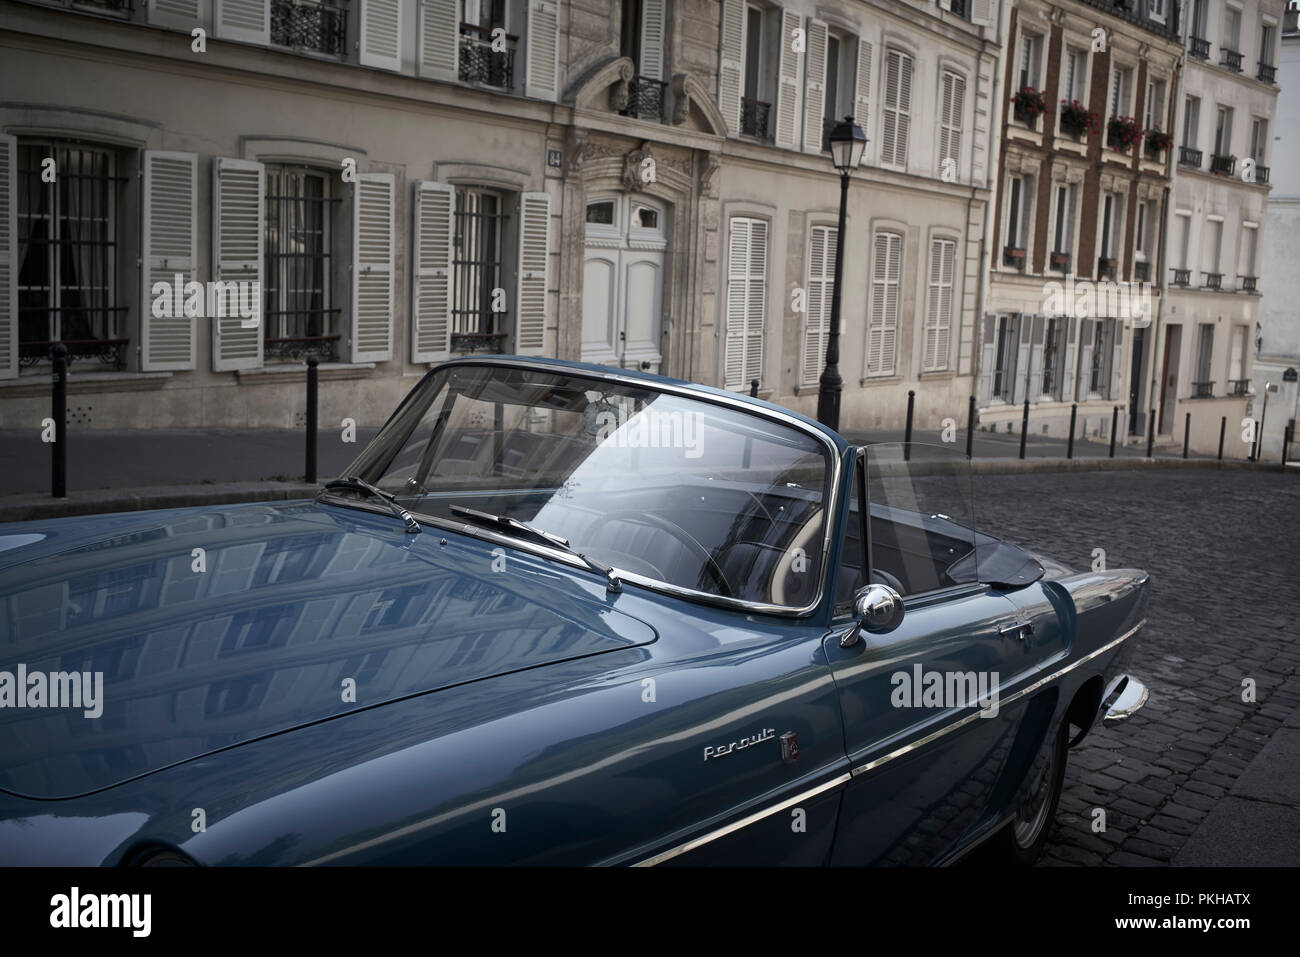 Renault old-timer parked on street in Montmartre, Paris - Stock Image